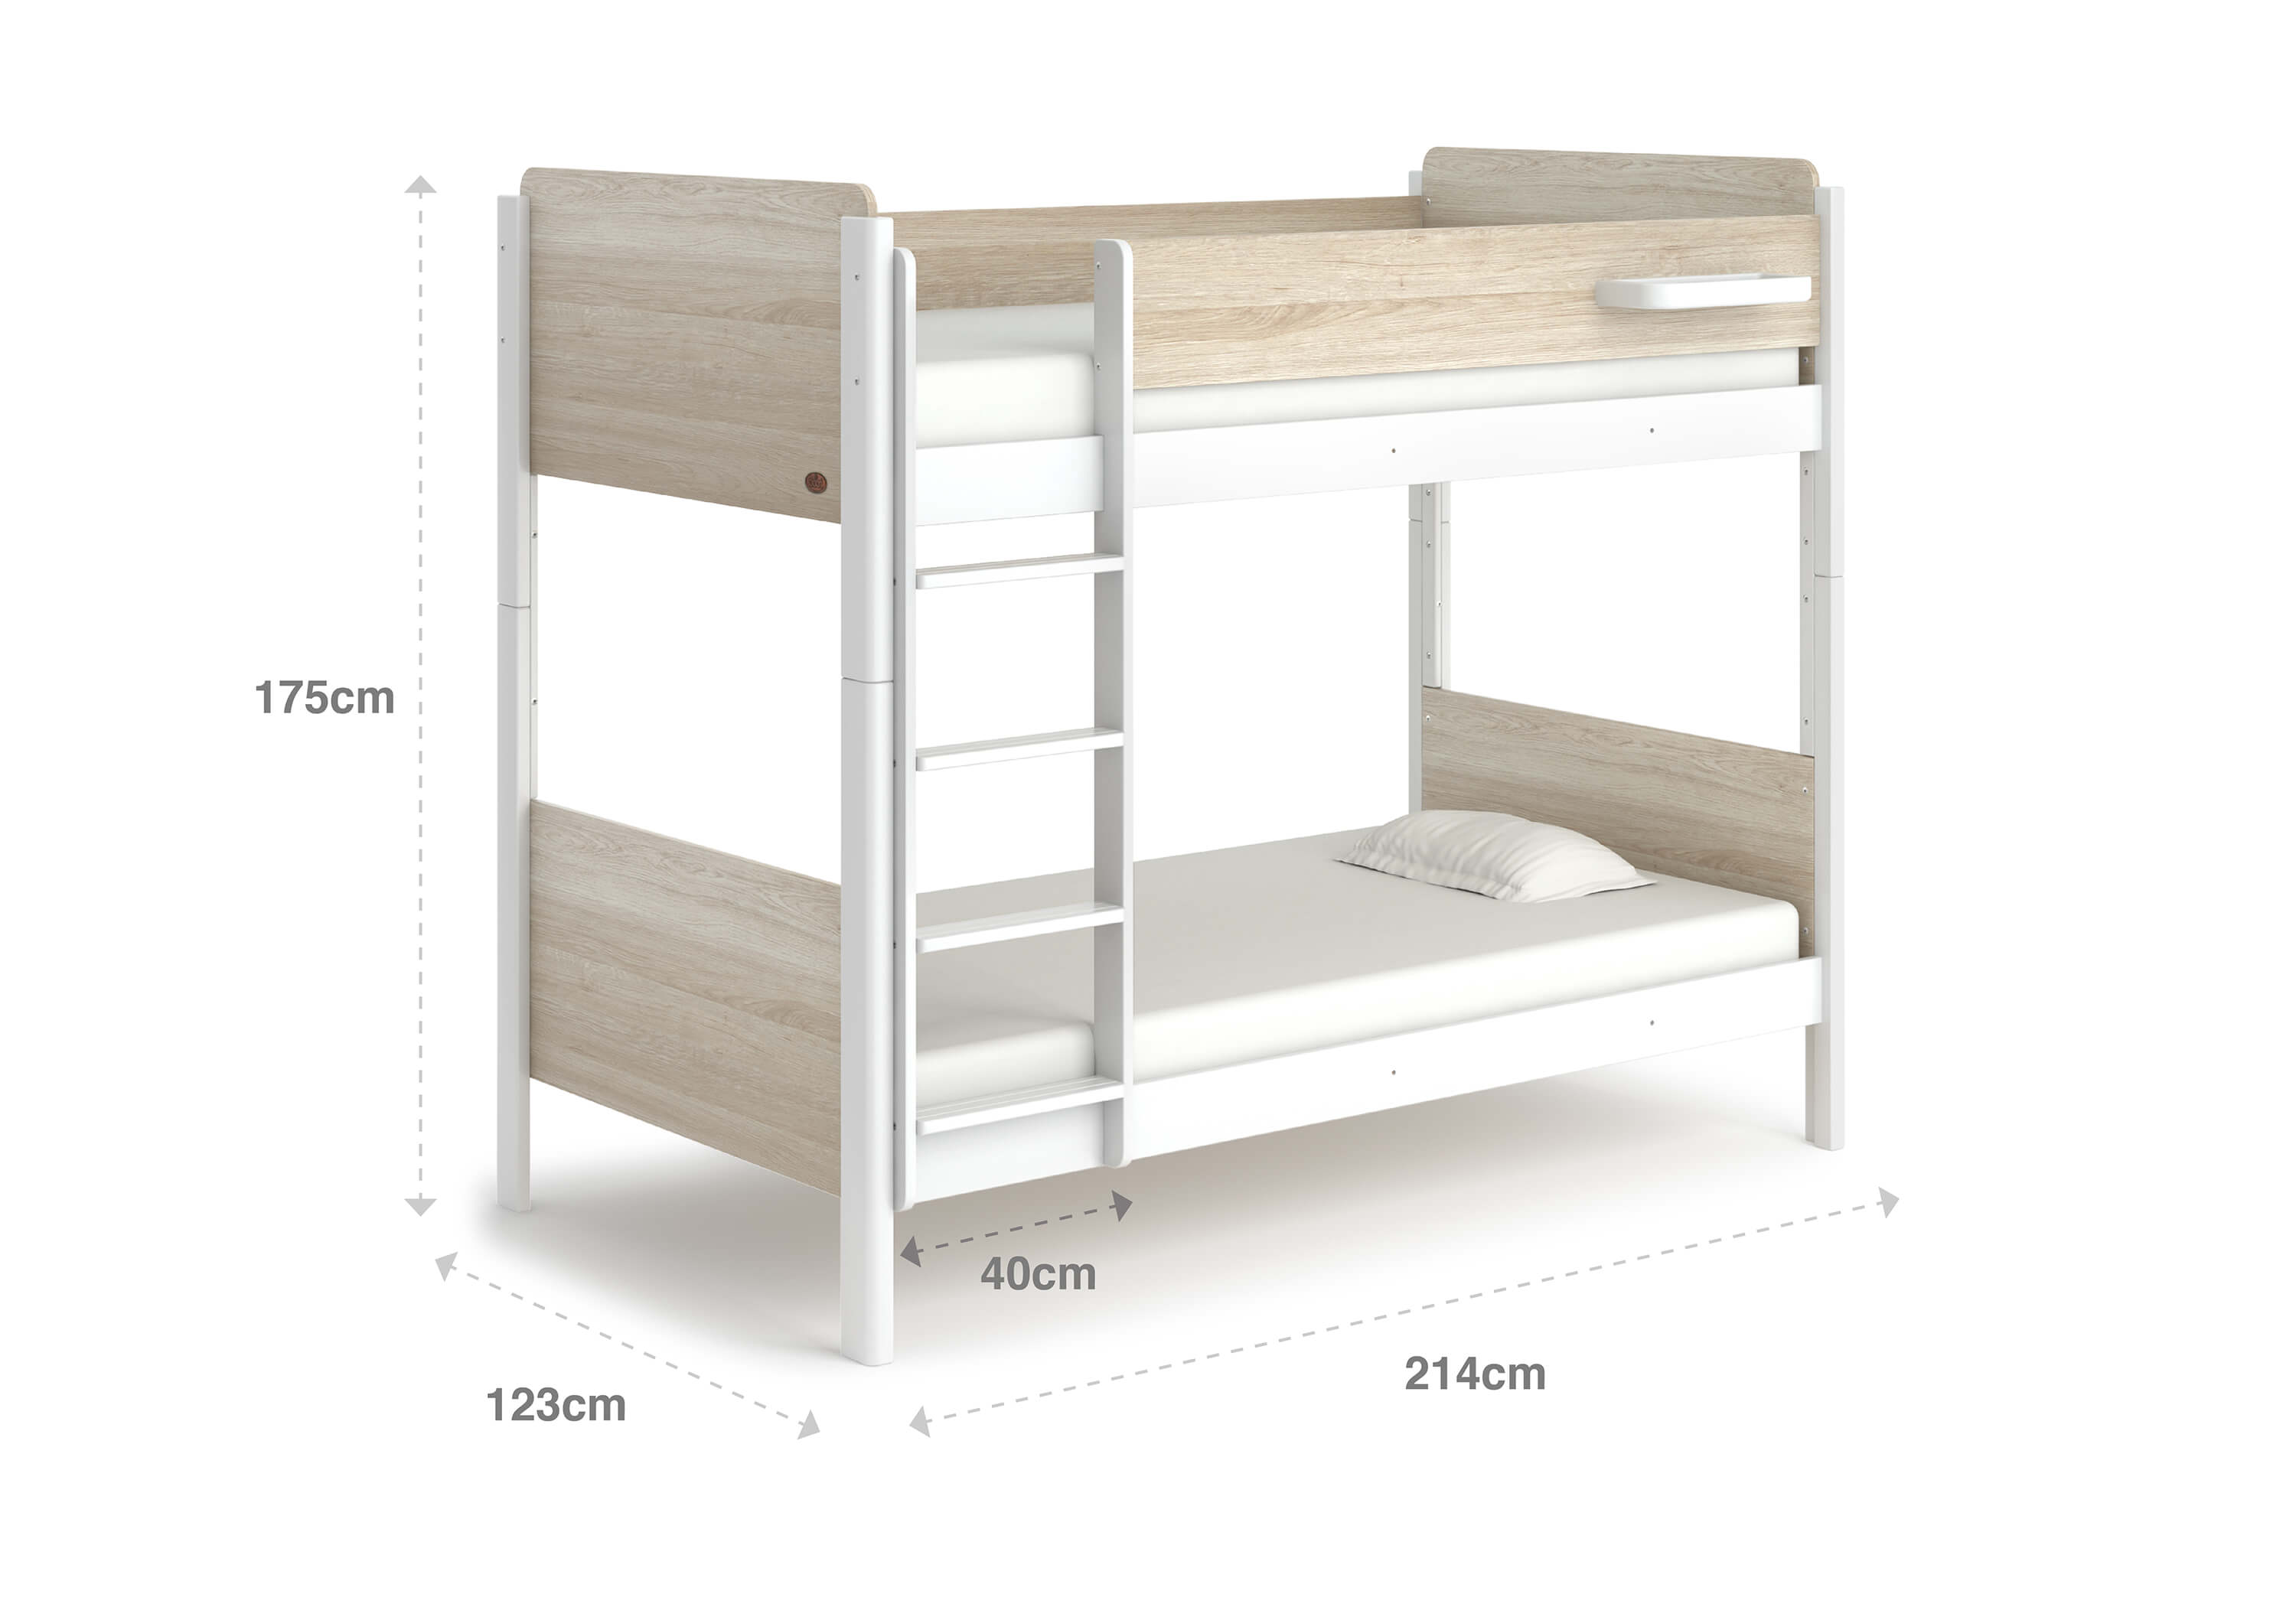 Product_Dimension_Images_Beds_June_2021-020